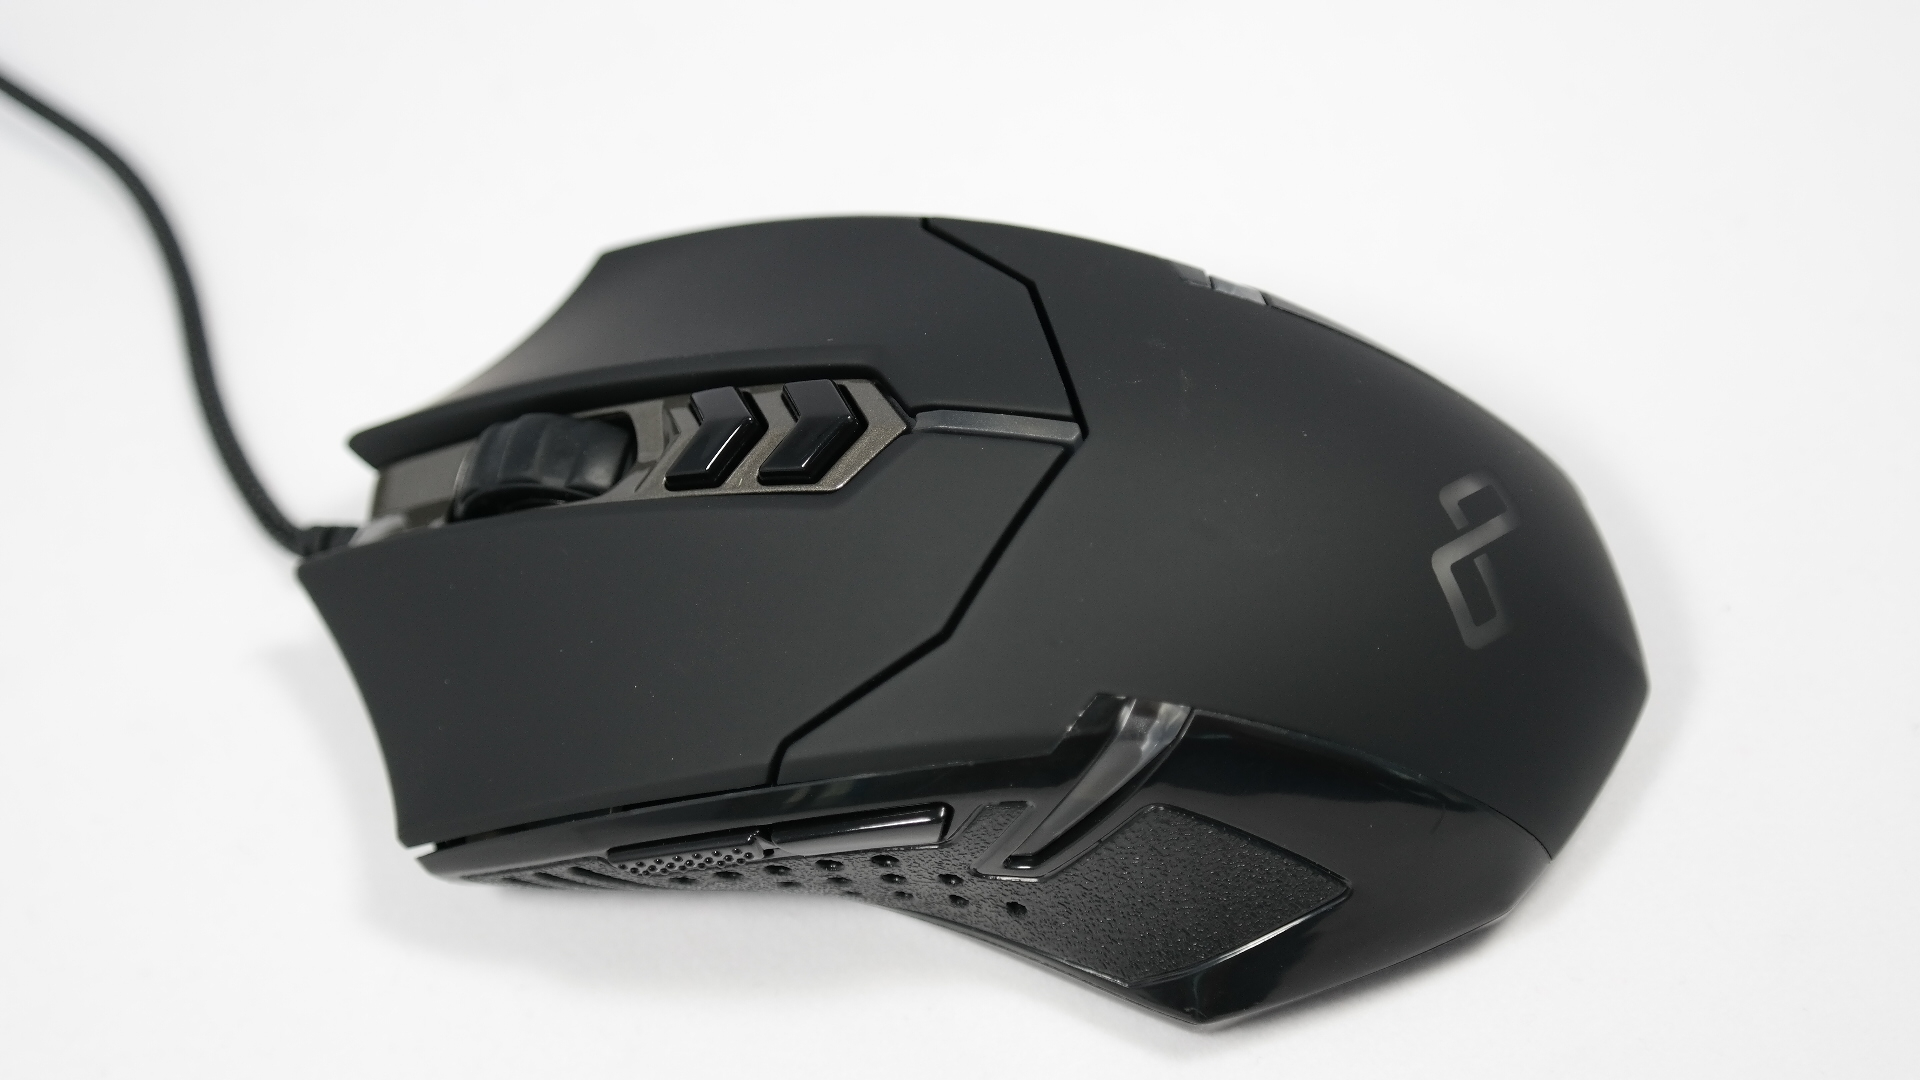 MAXTILL VESTA Optical Gaming Mouse ���� �� ����